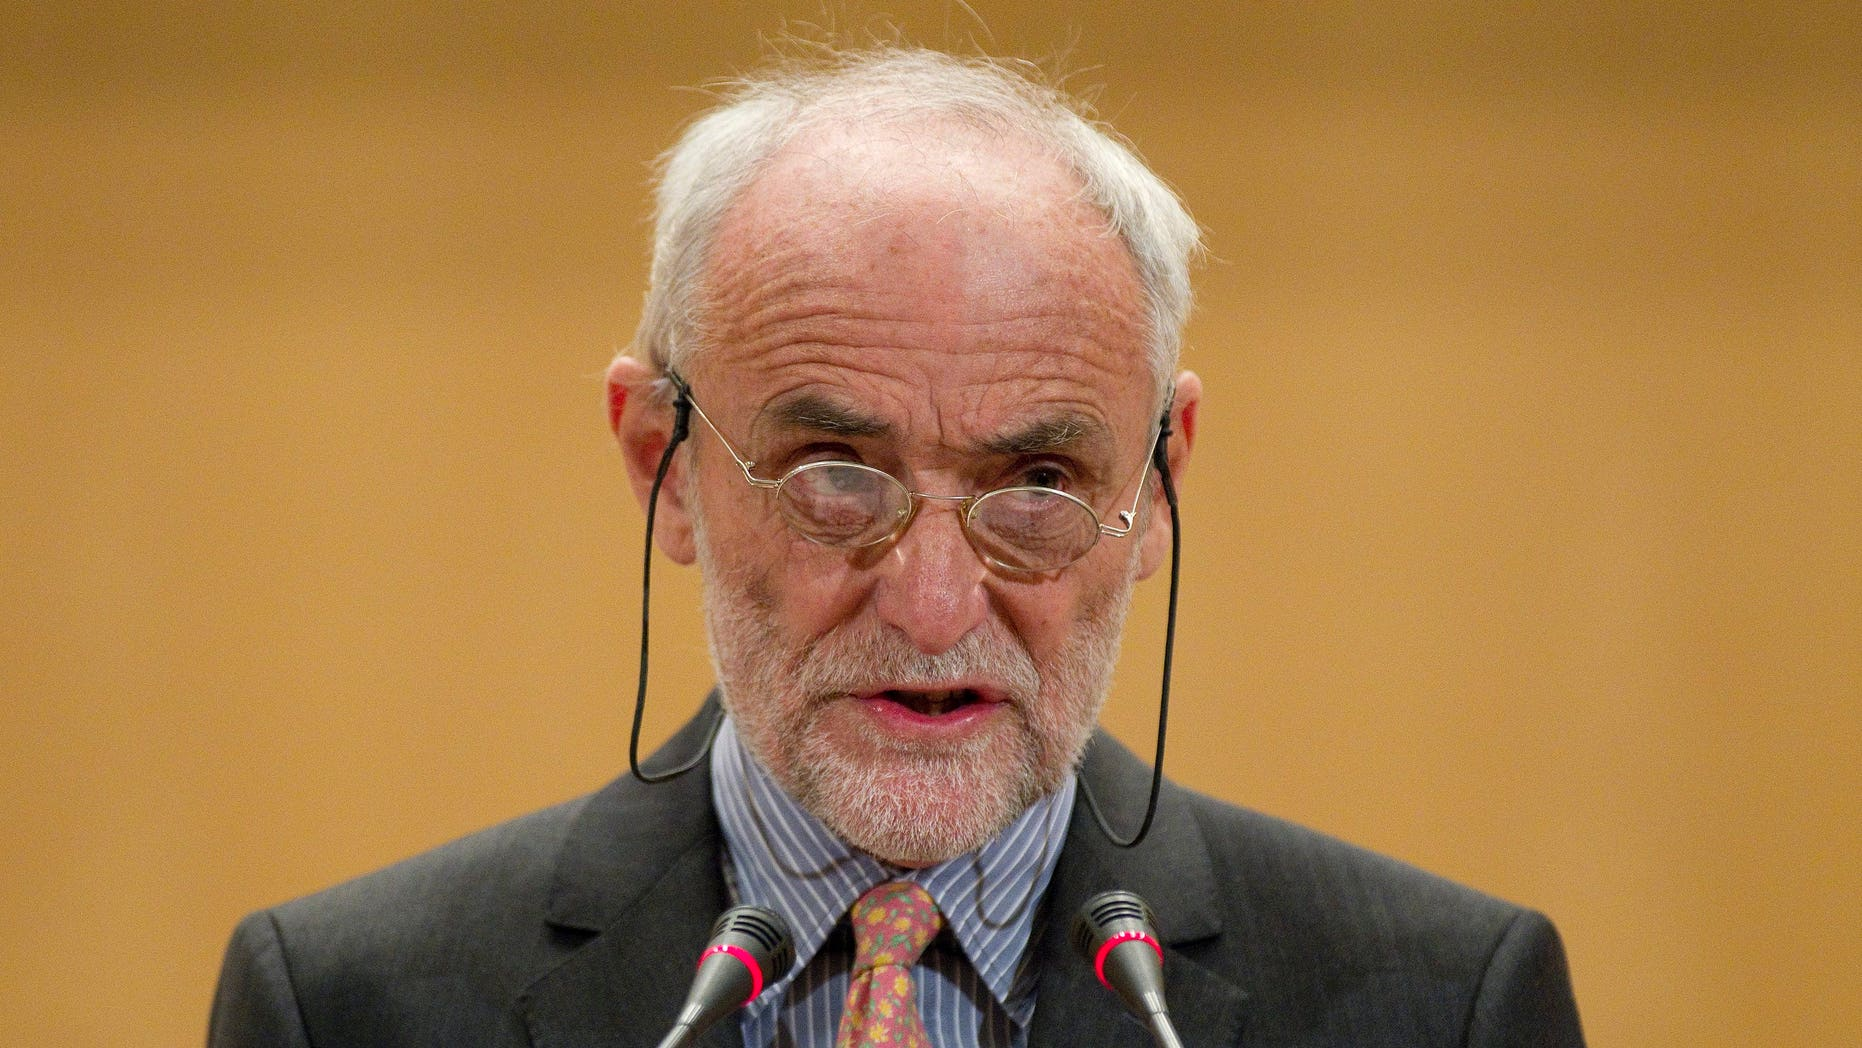 Nov. 29: Jakob Kellenberger, president of the International Committee of the Red Cross, speaks in Geneva.